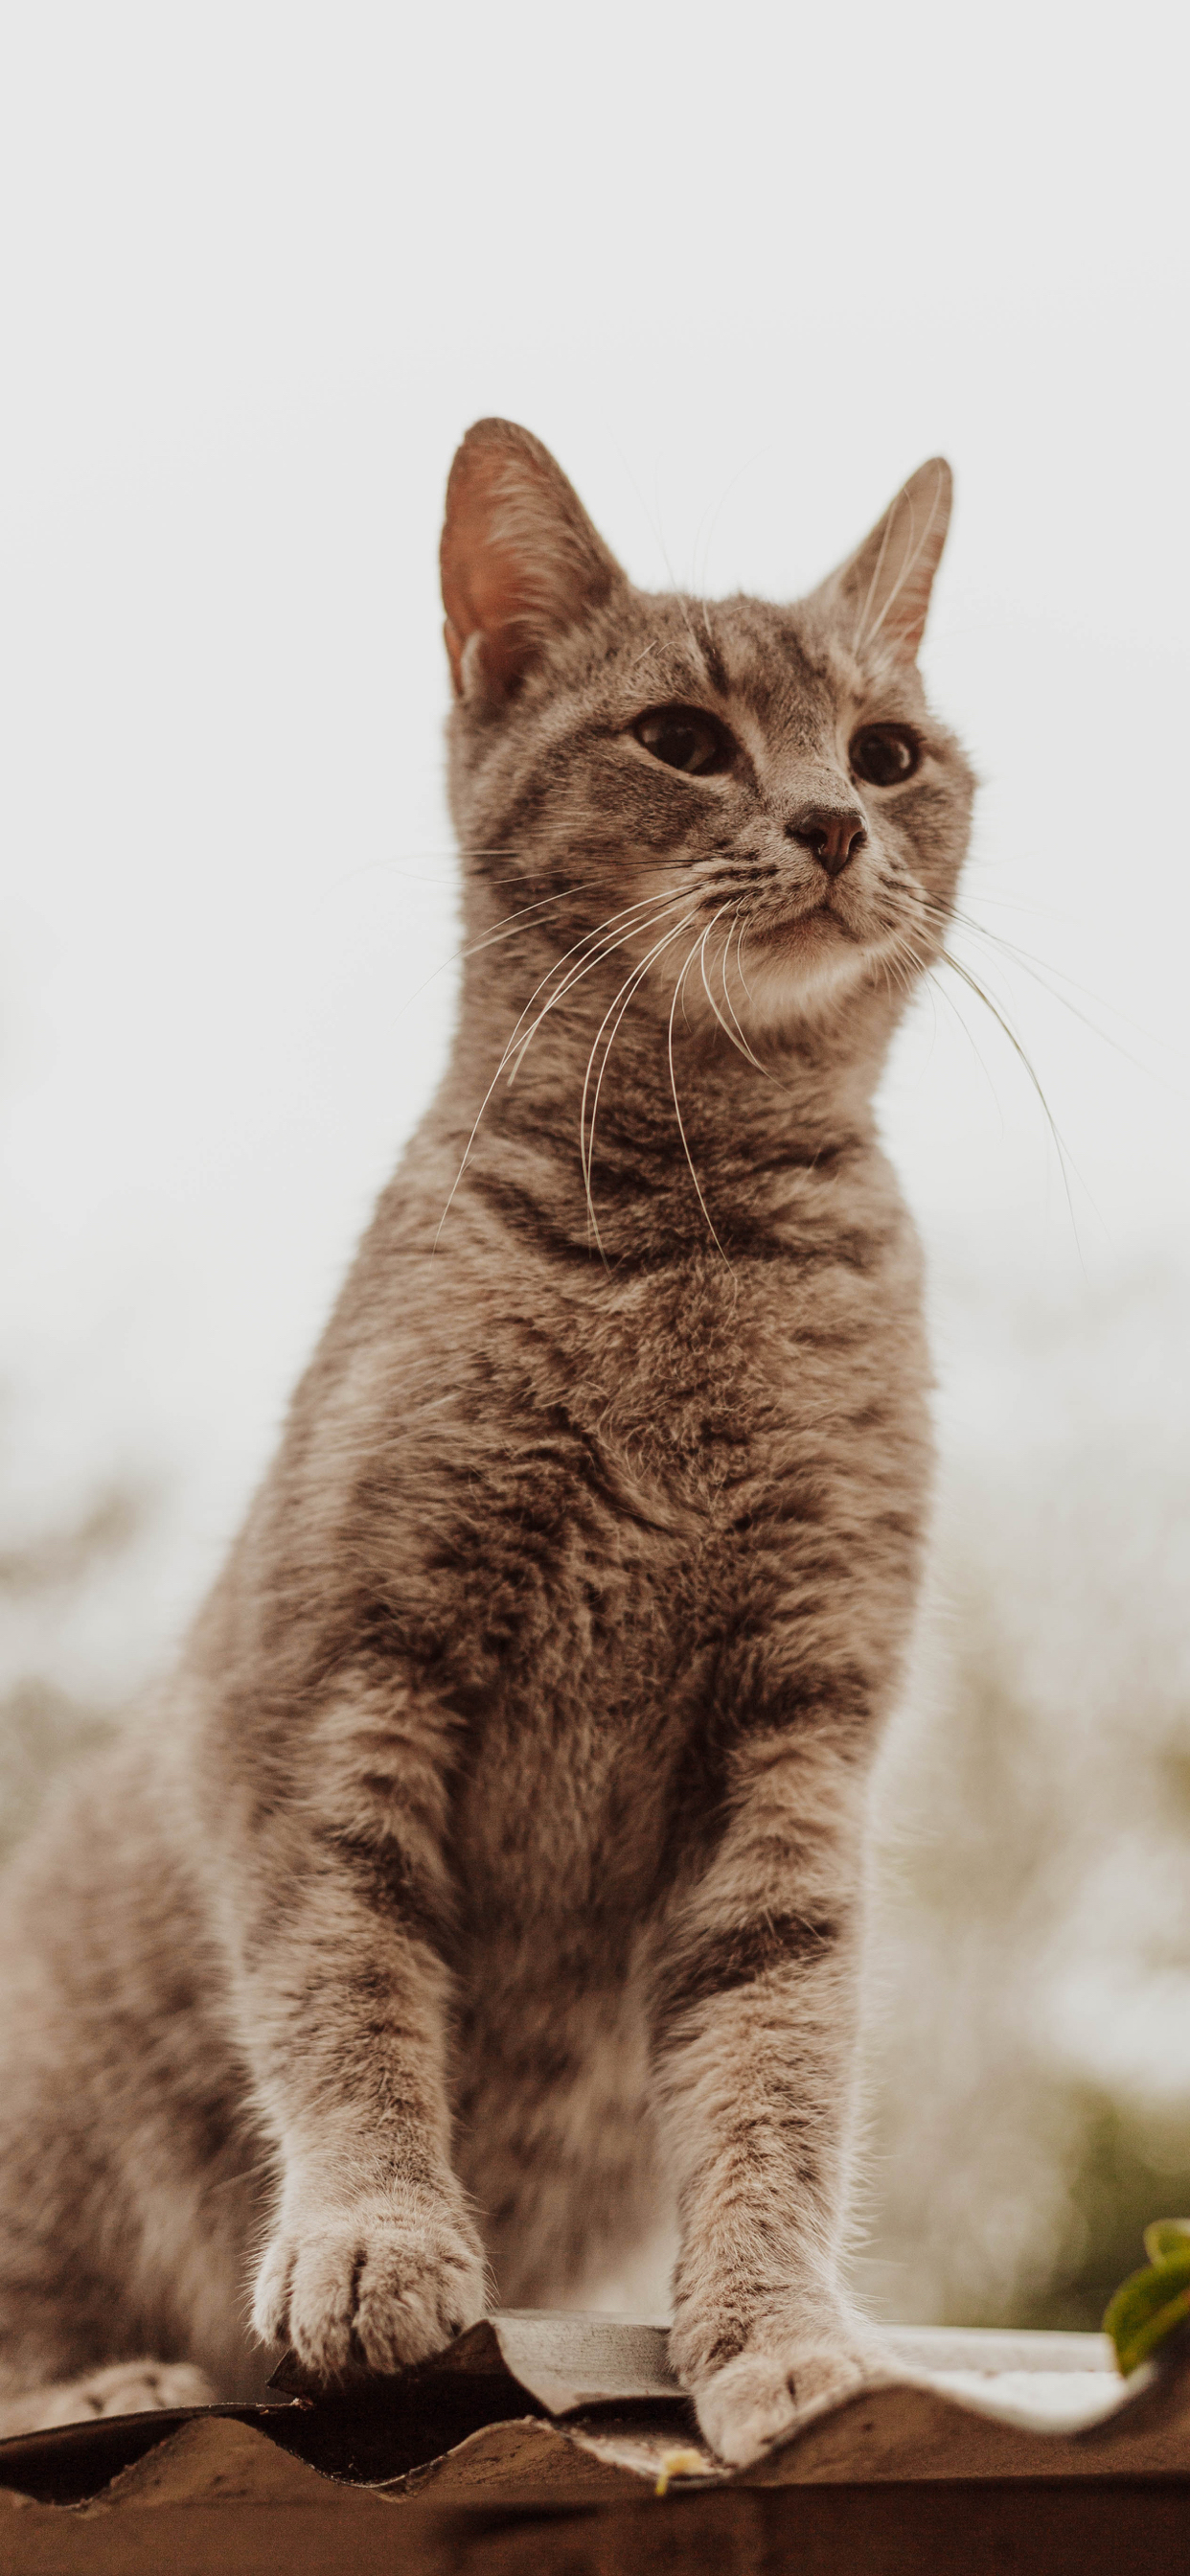 10 Beautiful Cat Wallpapers For Your Iphone 11 Women S Cat T Shirts I Like Cats Very Much